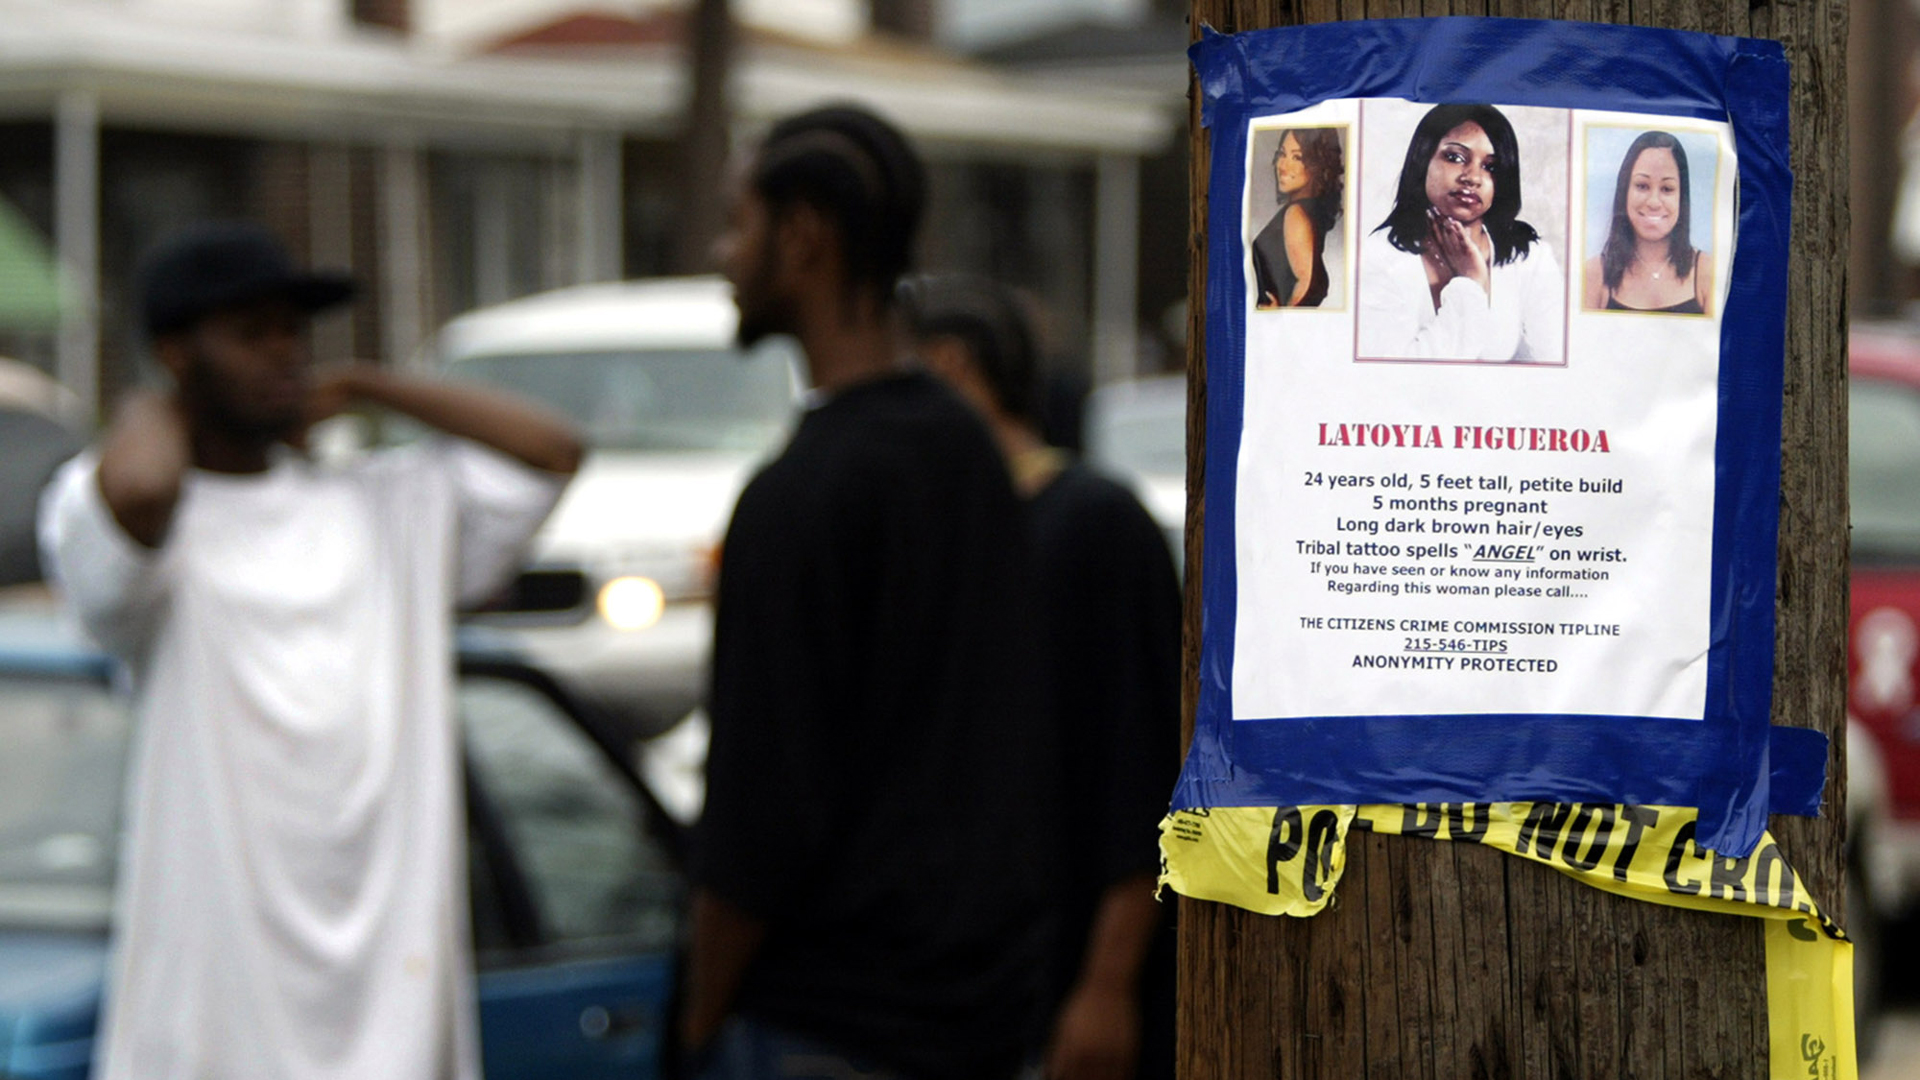 Why the Media Ignored the Disappearance and Murder of LaToyia Figueroa